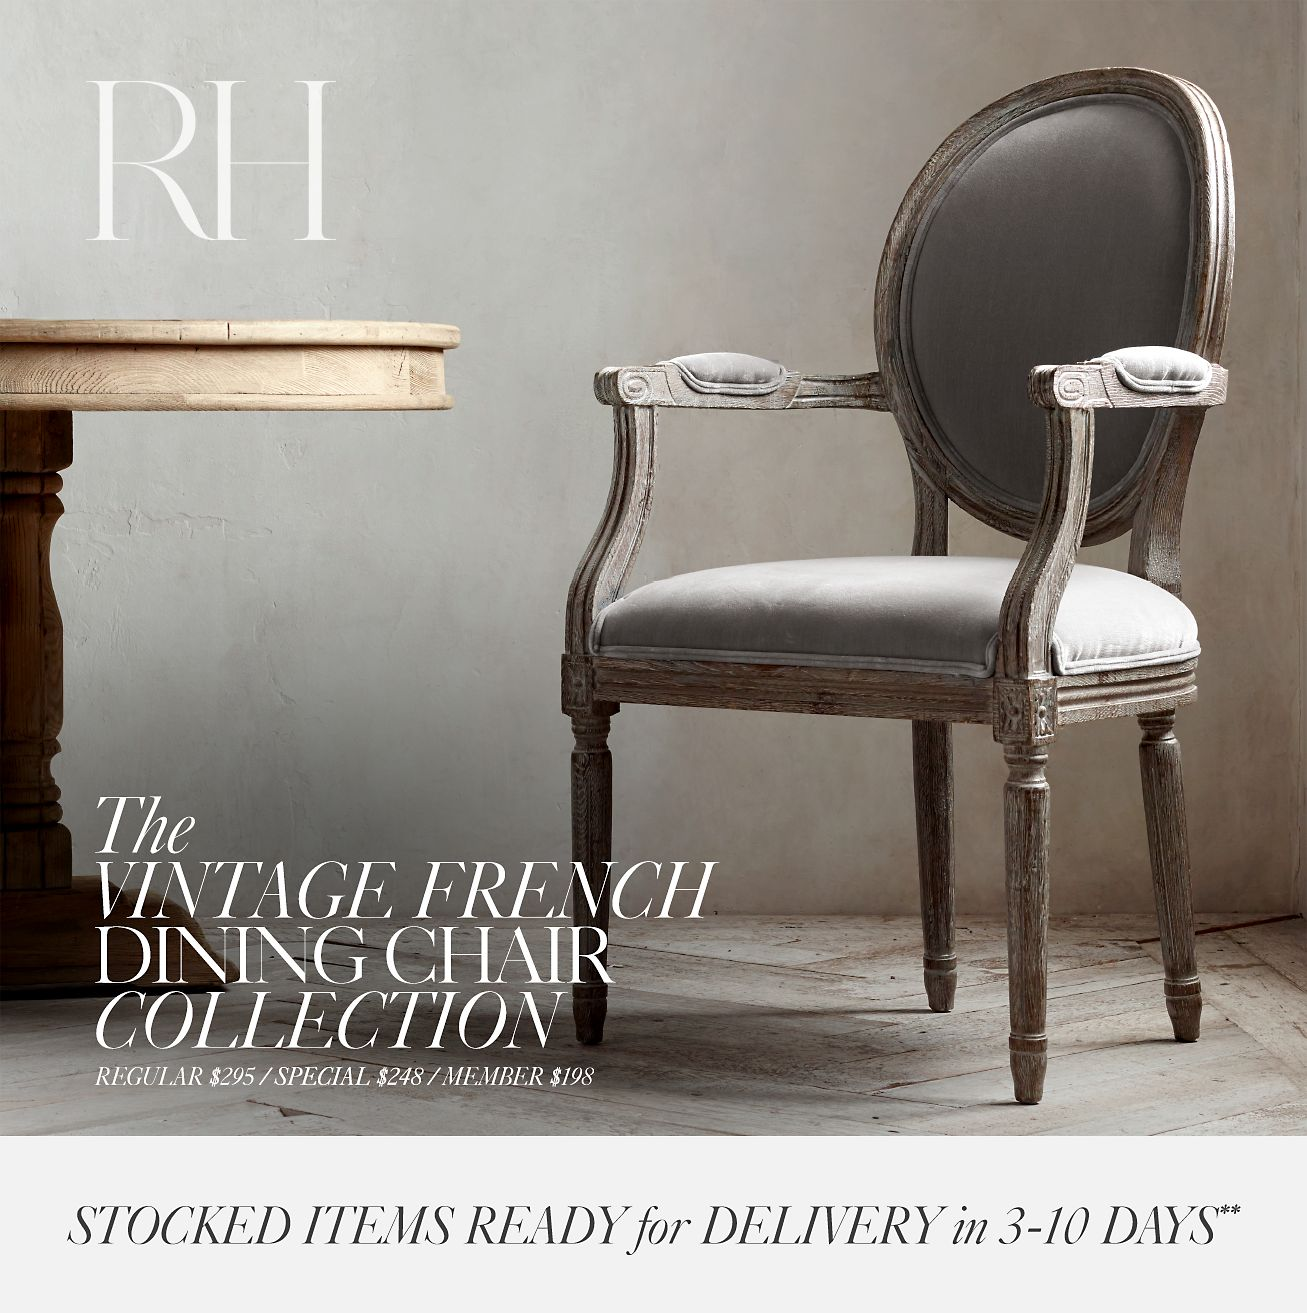 The Vintage French Dining Chair Collection